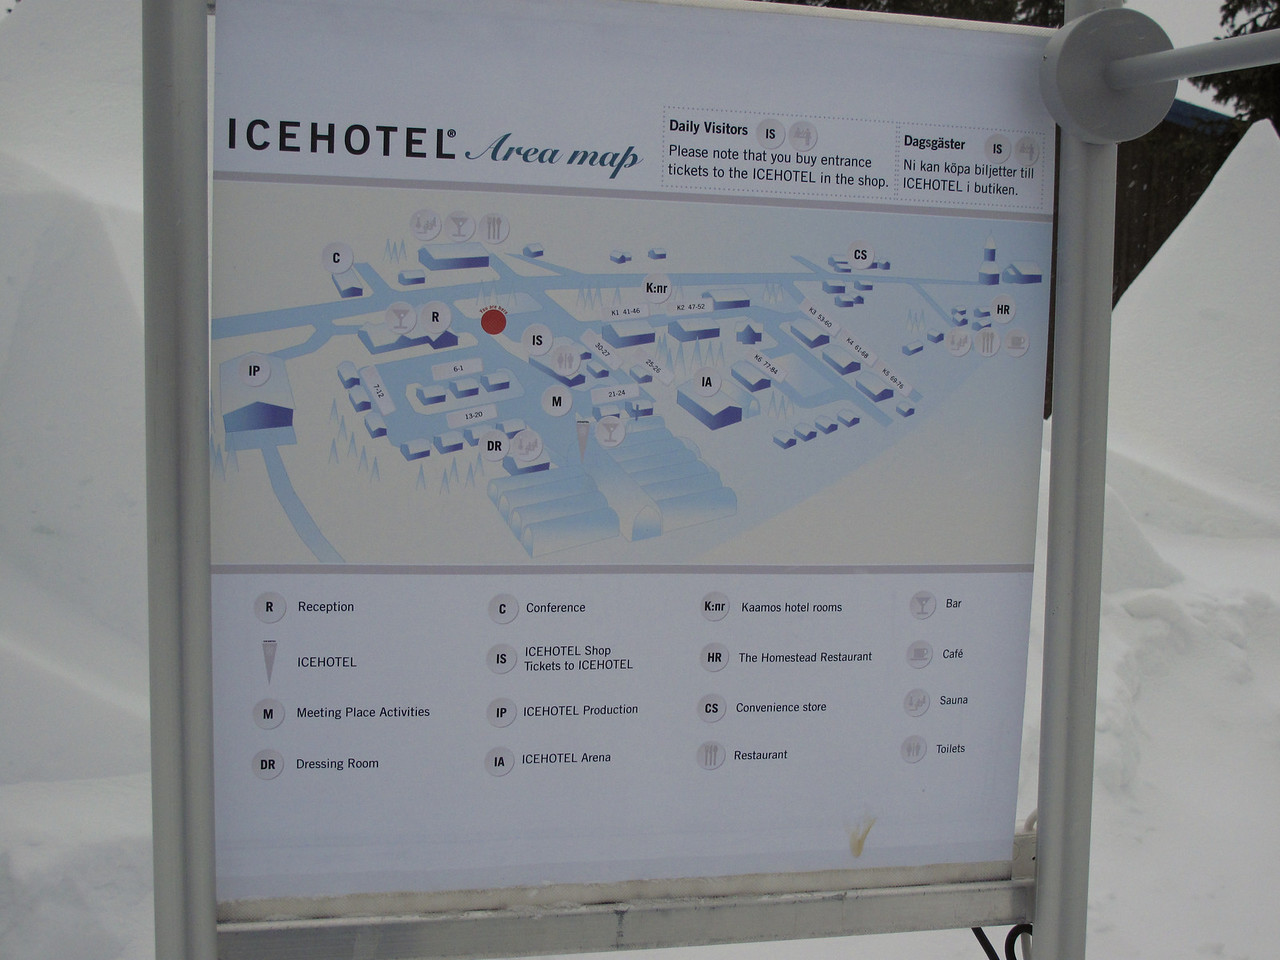 After we finish dog sledding, we're off to the Icehotel, where we'll be spending the night.